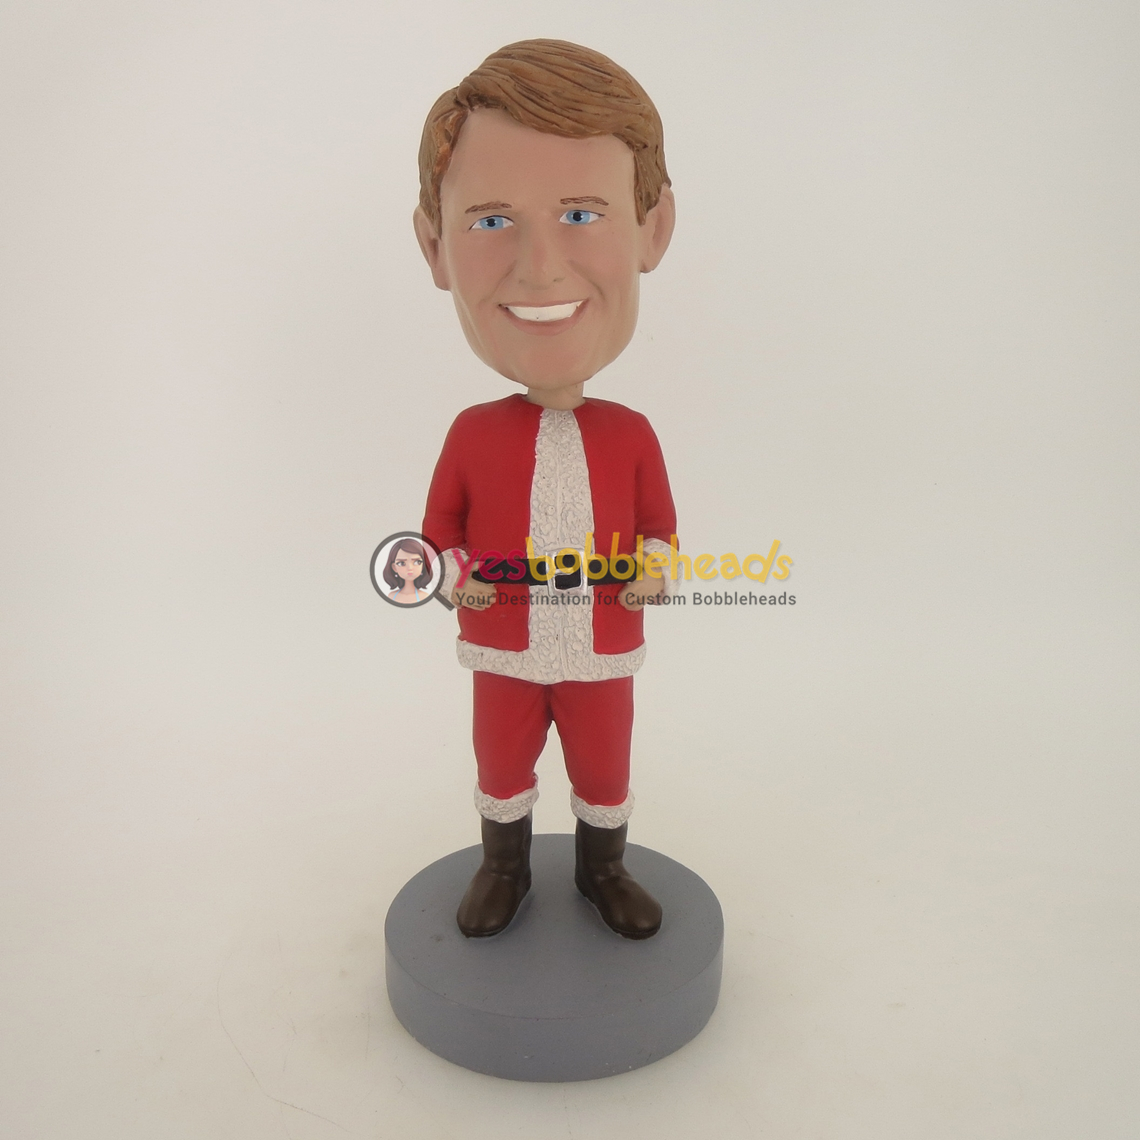 Picture of Custom Bobblehead Doll: Male Santa